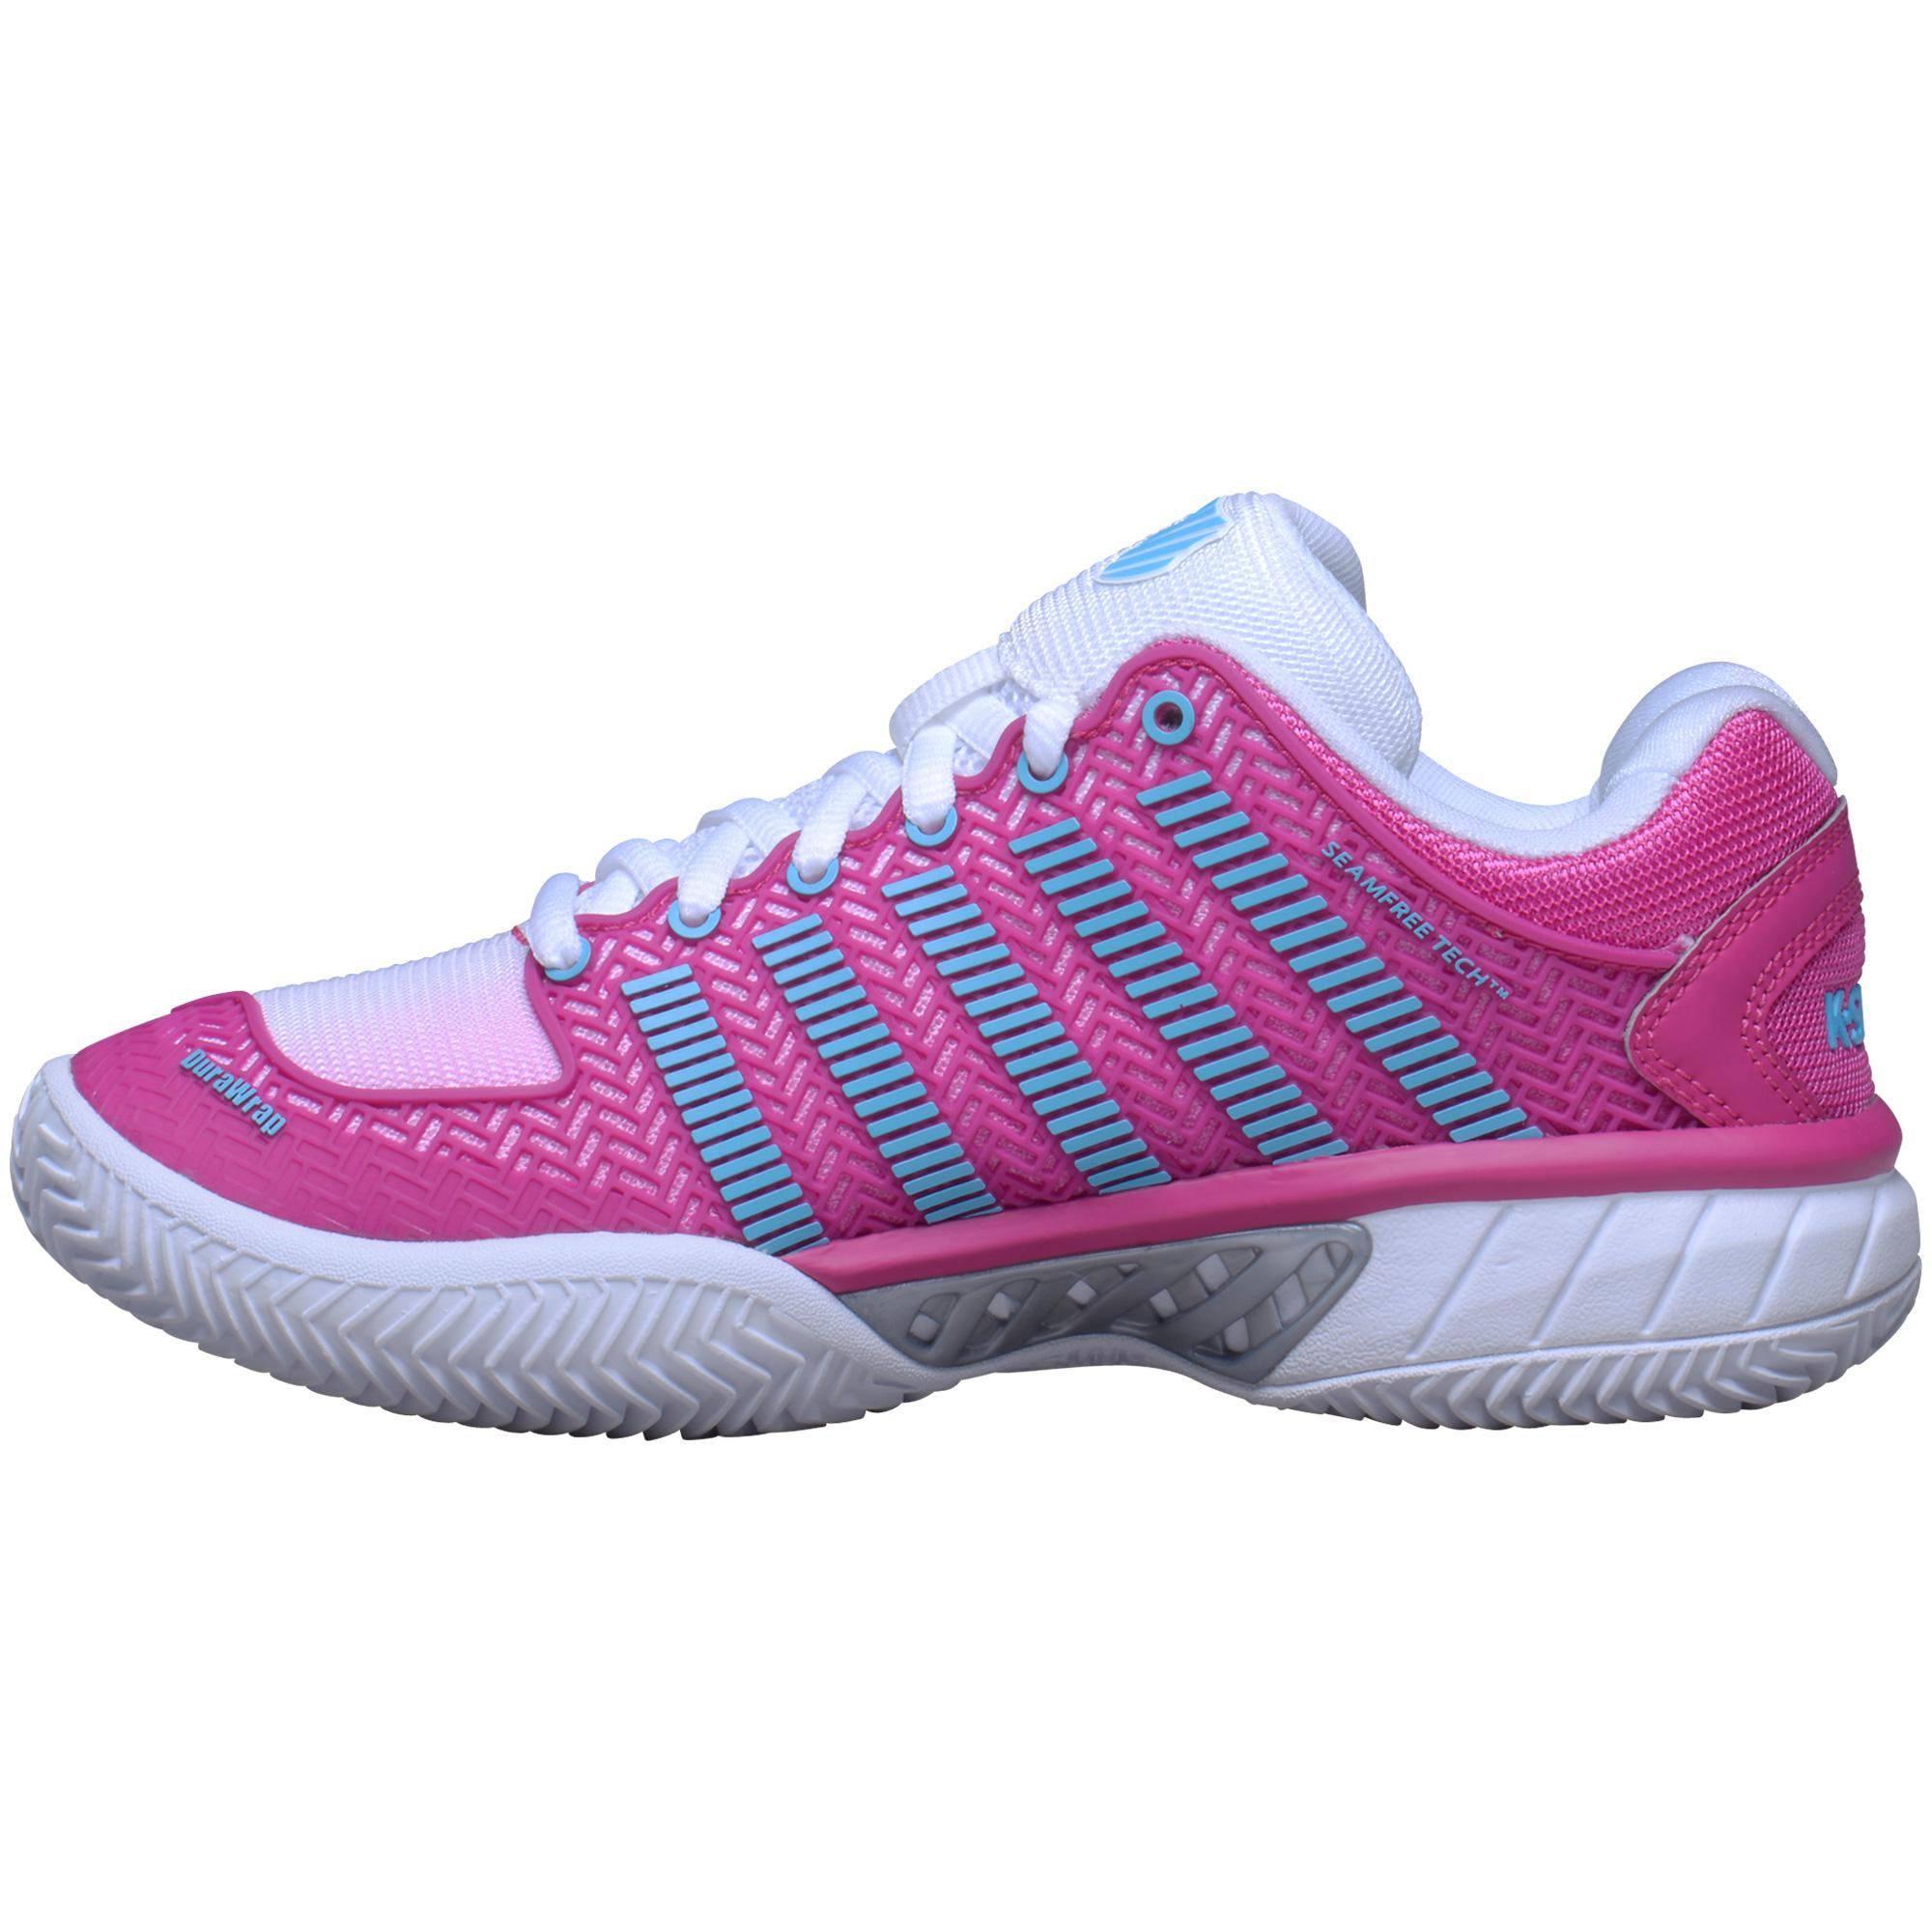 K Swiss Womens Hypercourt Express Tennis Shoes